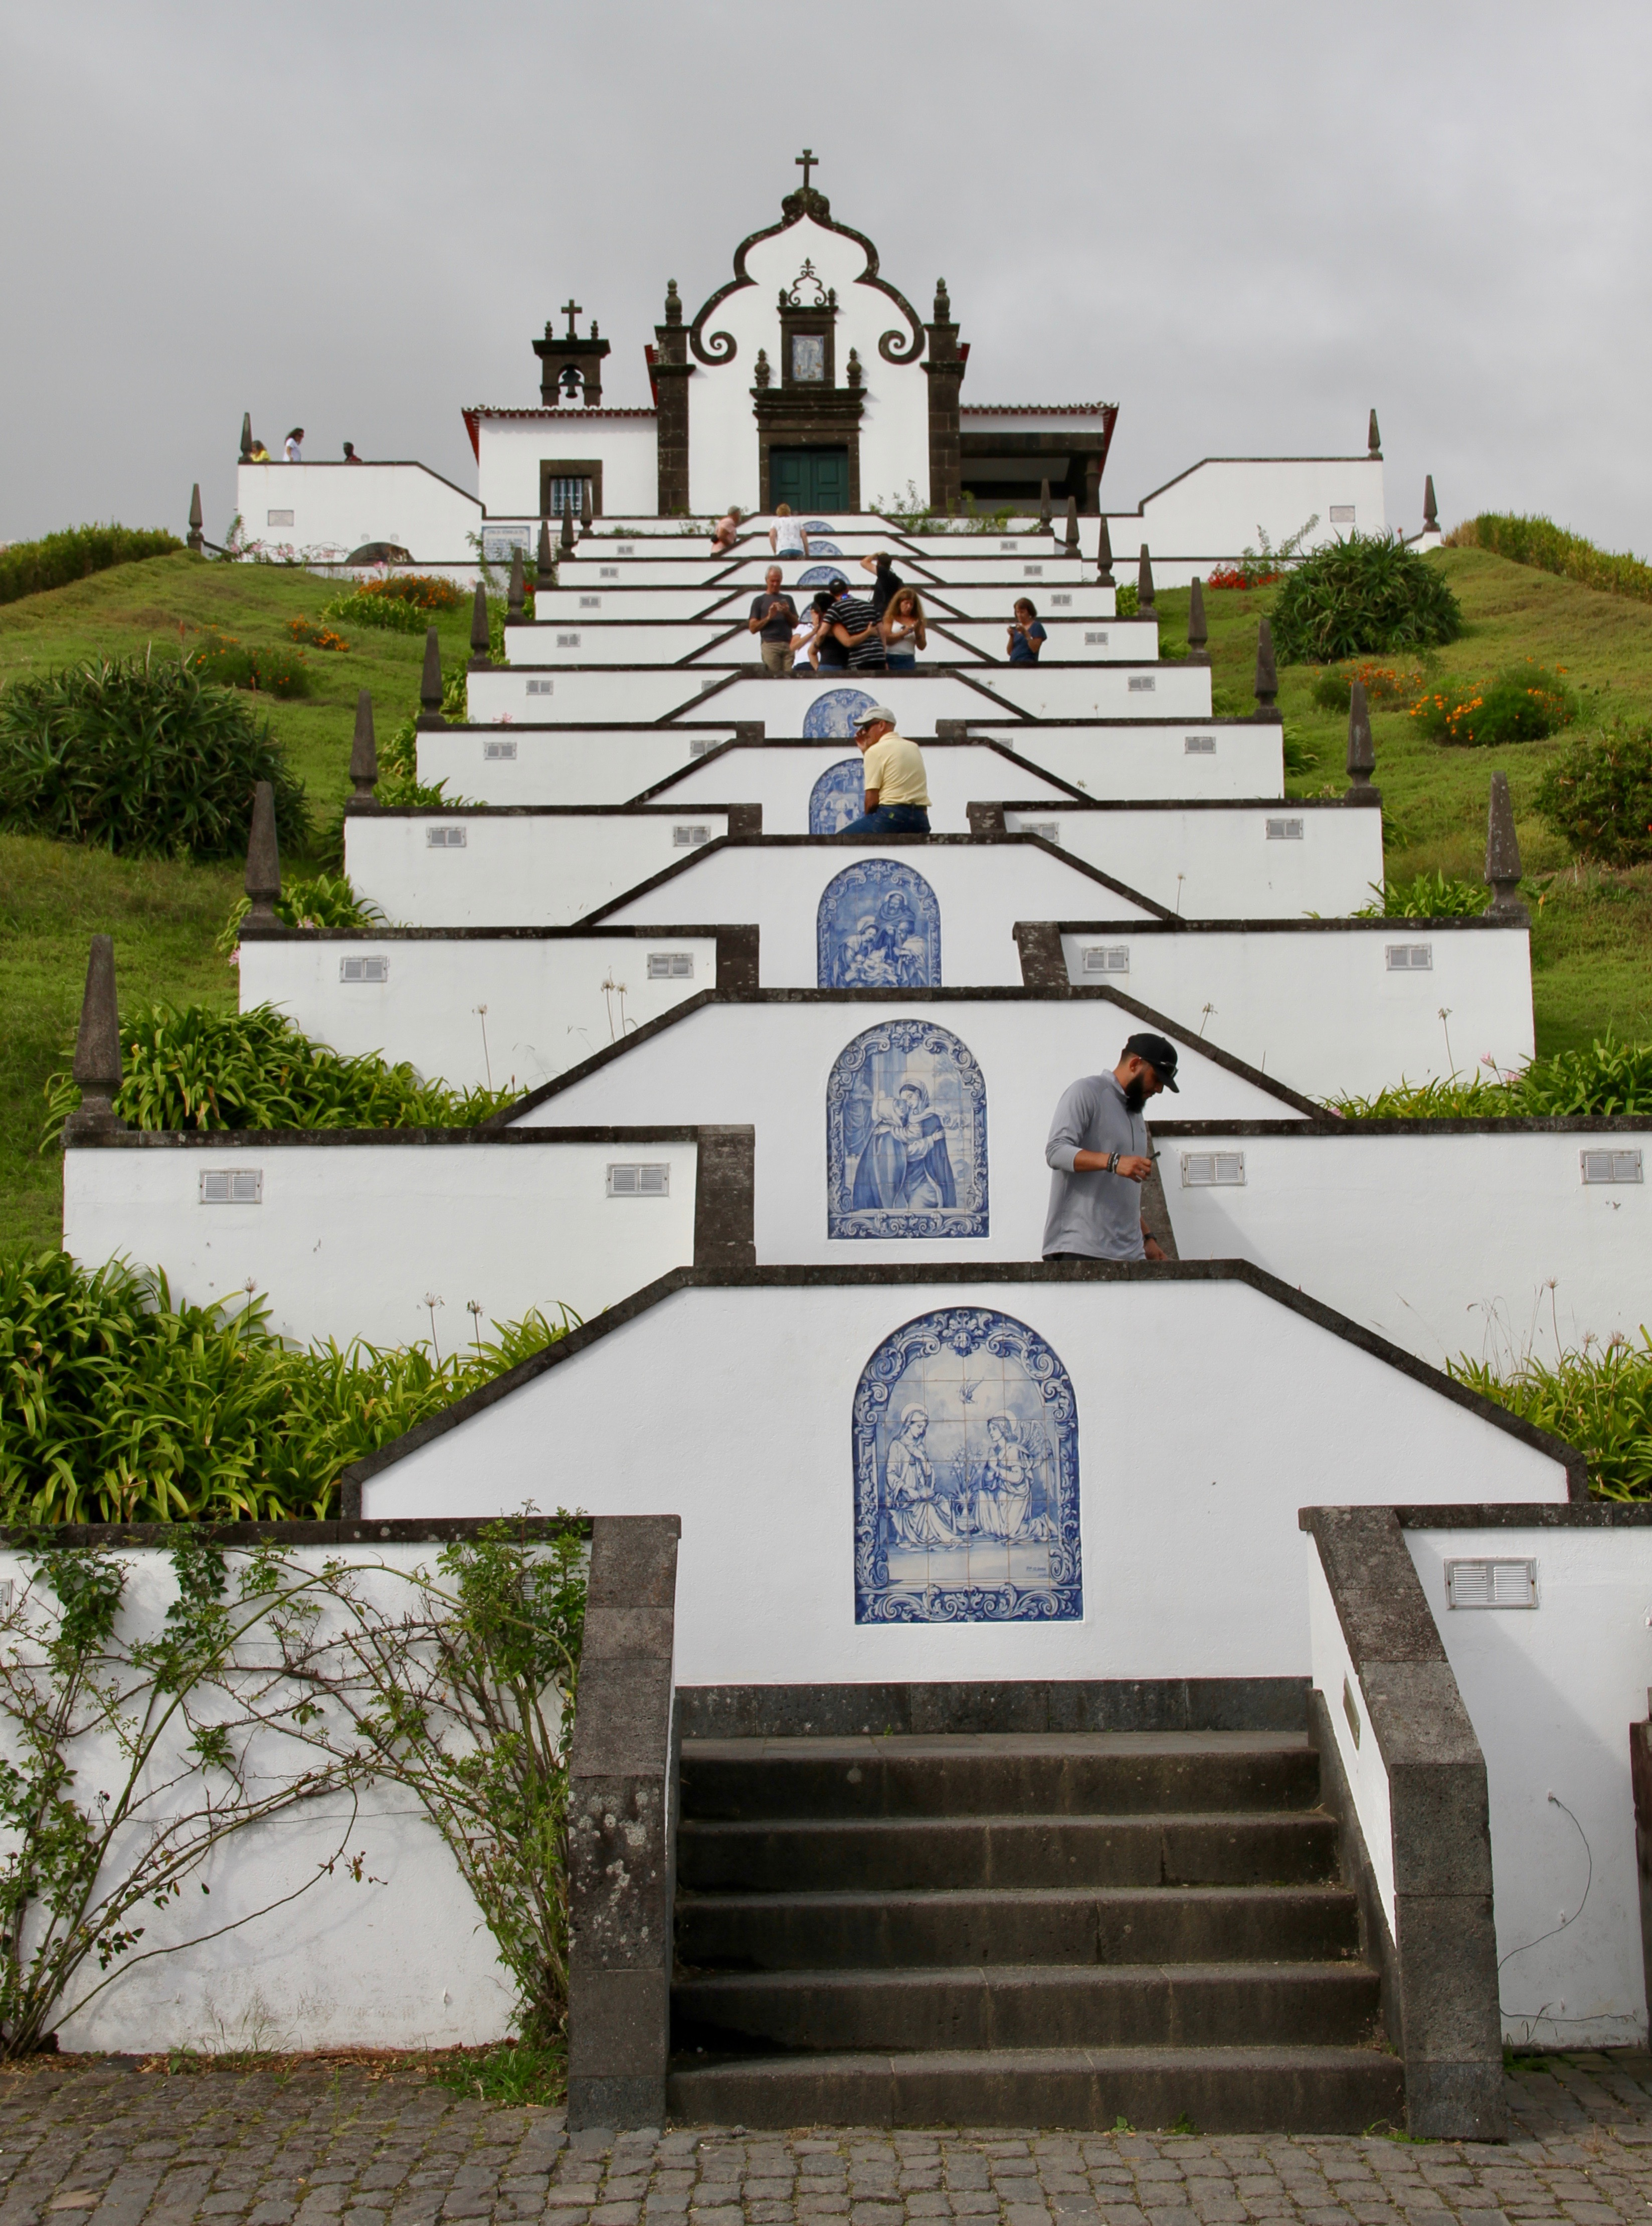 The stairways leading to the Our Lady of Peace (Nossa Senhora da Paz) Church feature tiled illustrations of the life of Jesus Christ. Photo taken Sept. 17, 2019, above Vila Franca do Campo, São Miguel Island of the Azores.